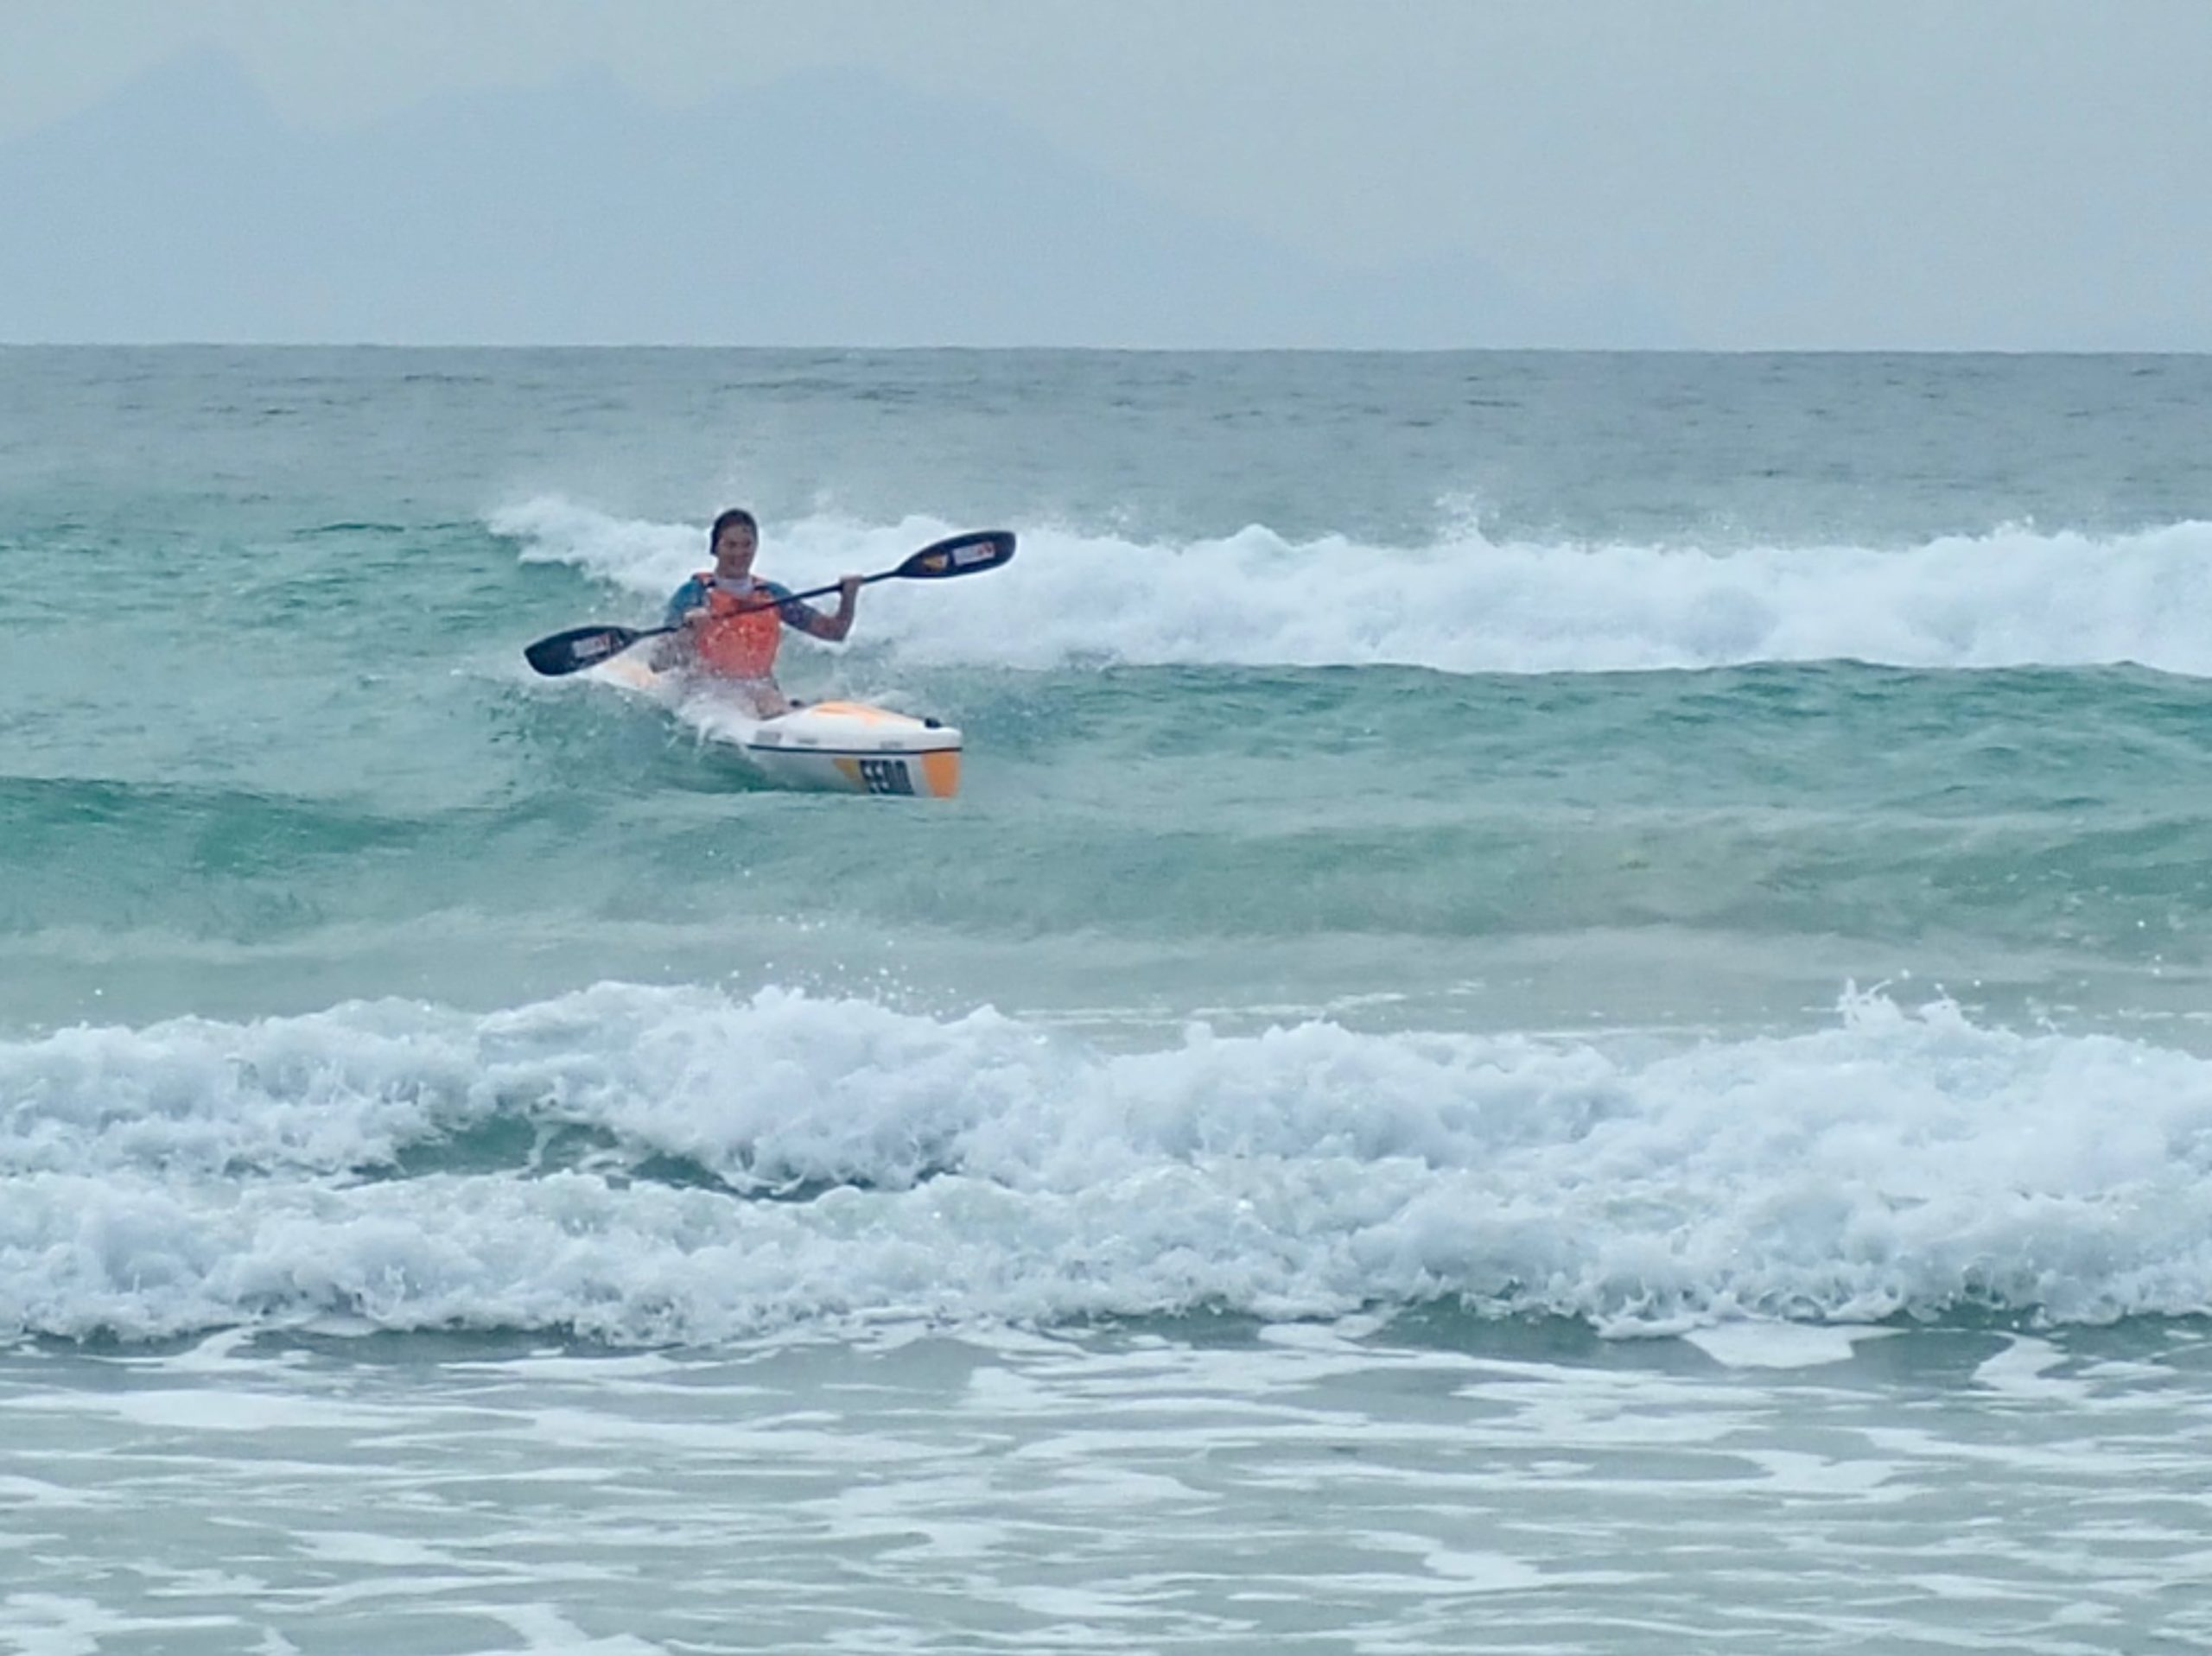 Surf ski in South Africa